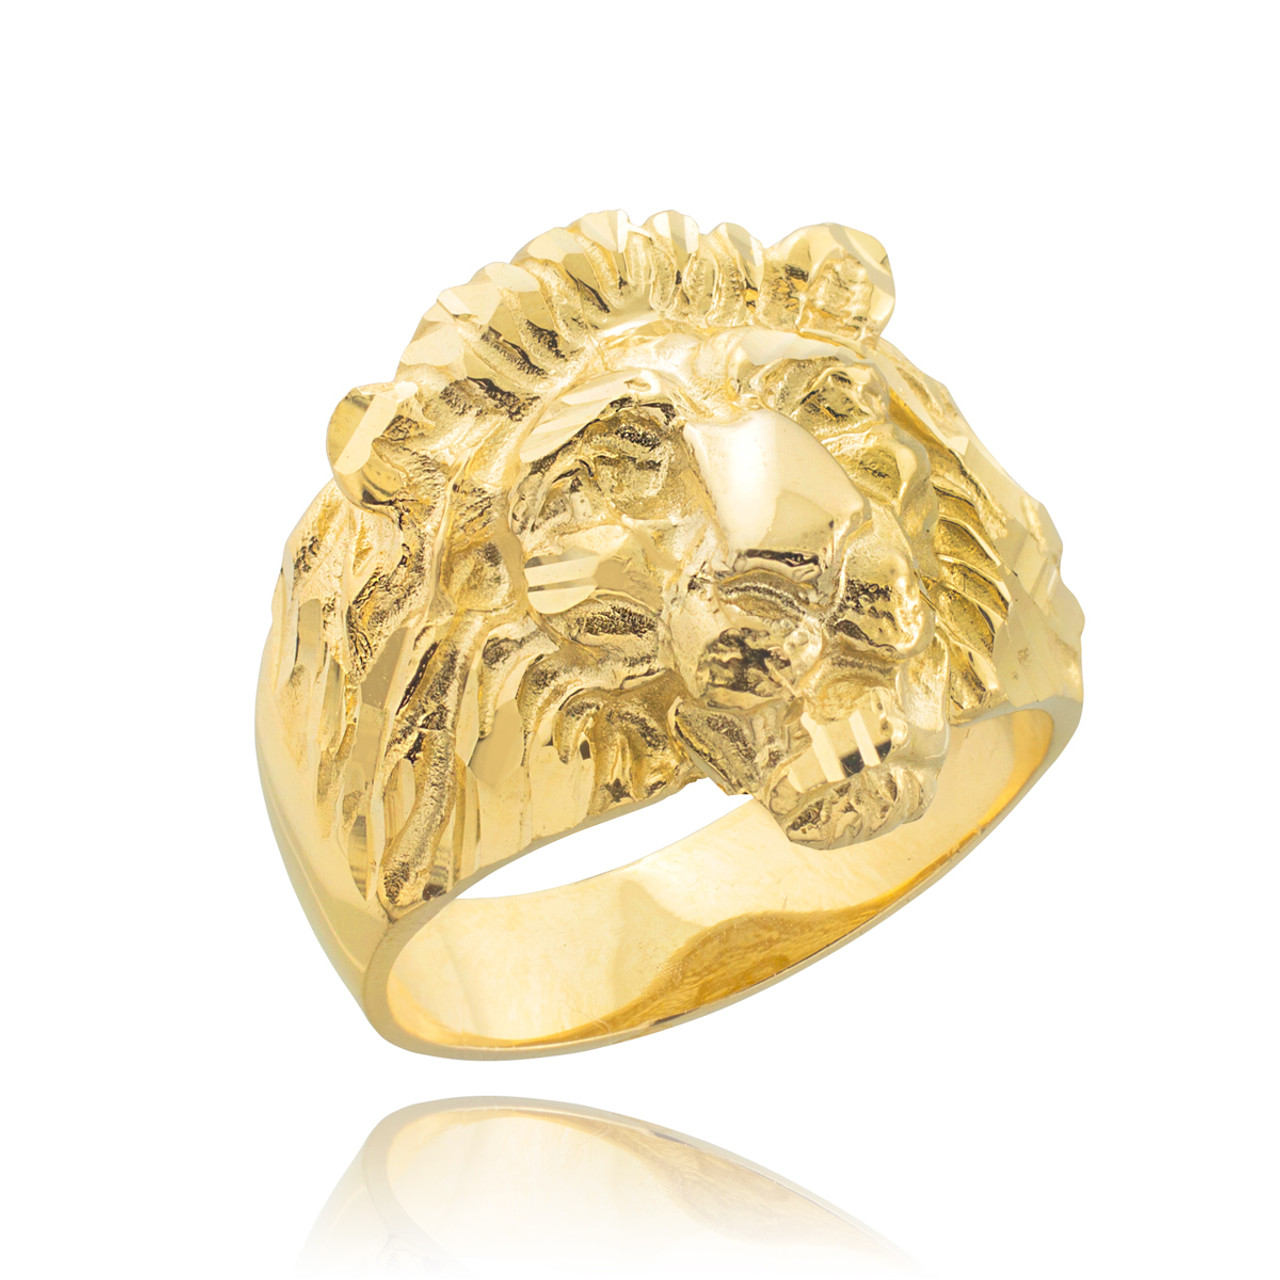 men product stainless steel head iron angels rings high ring solid quality tusk lion lions